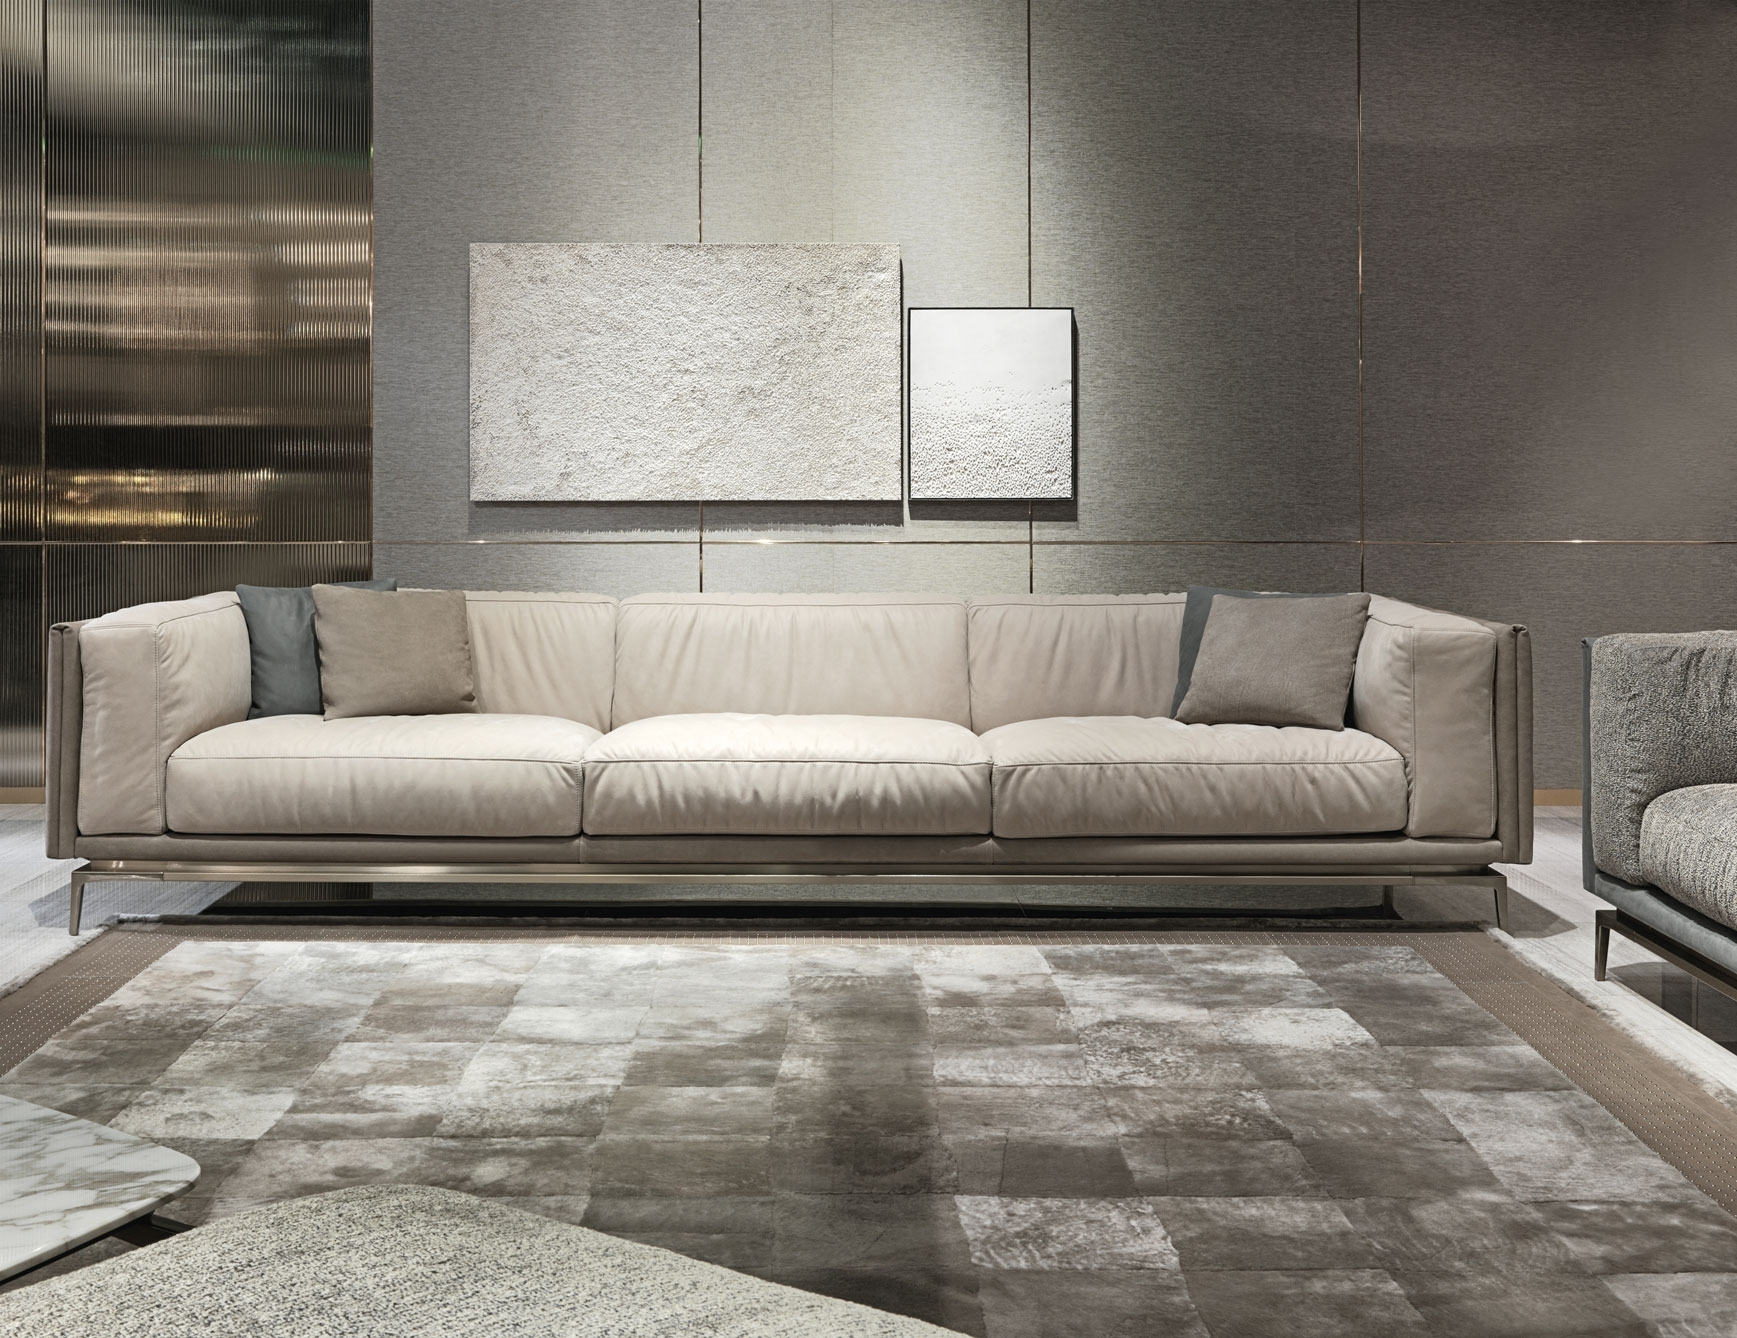 Italian Designer Luxury High End Sofas & Sofa Chairs: Nella Vetrina Pertaining To Luxury Sofas (Image 3 of 10)